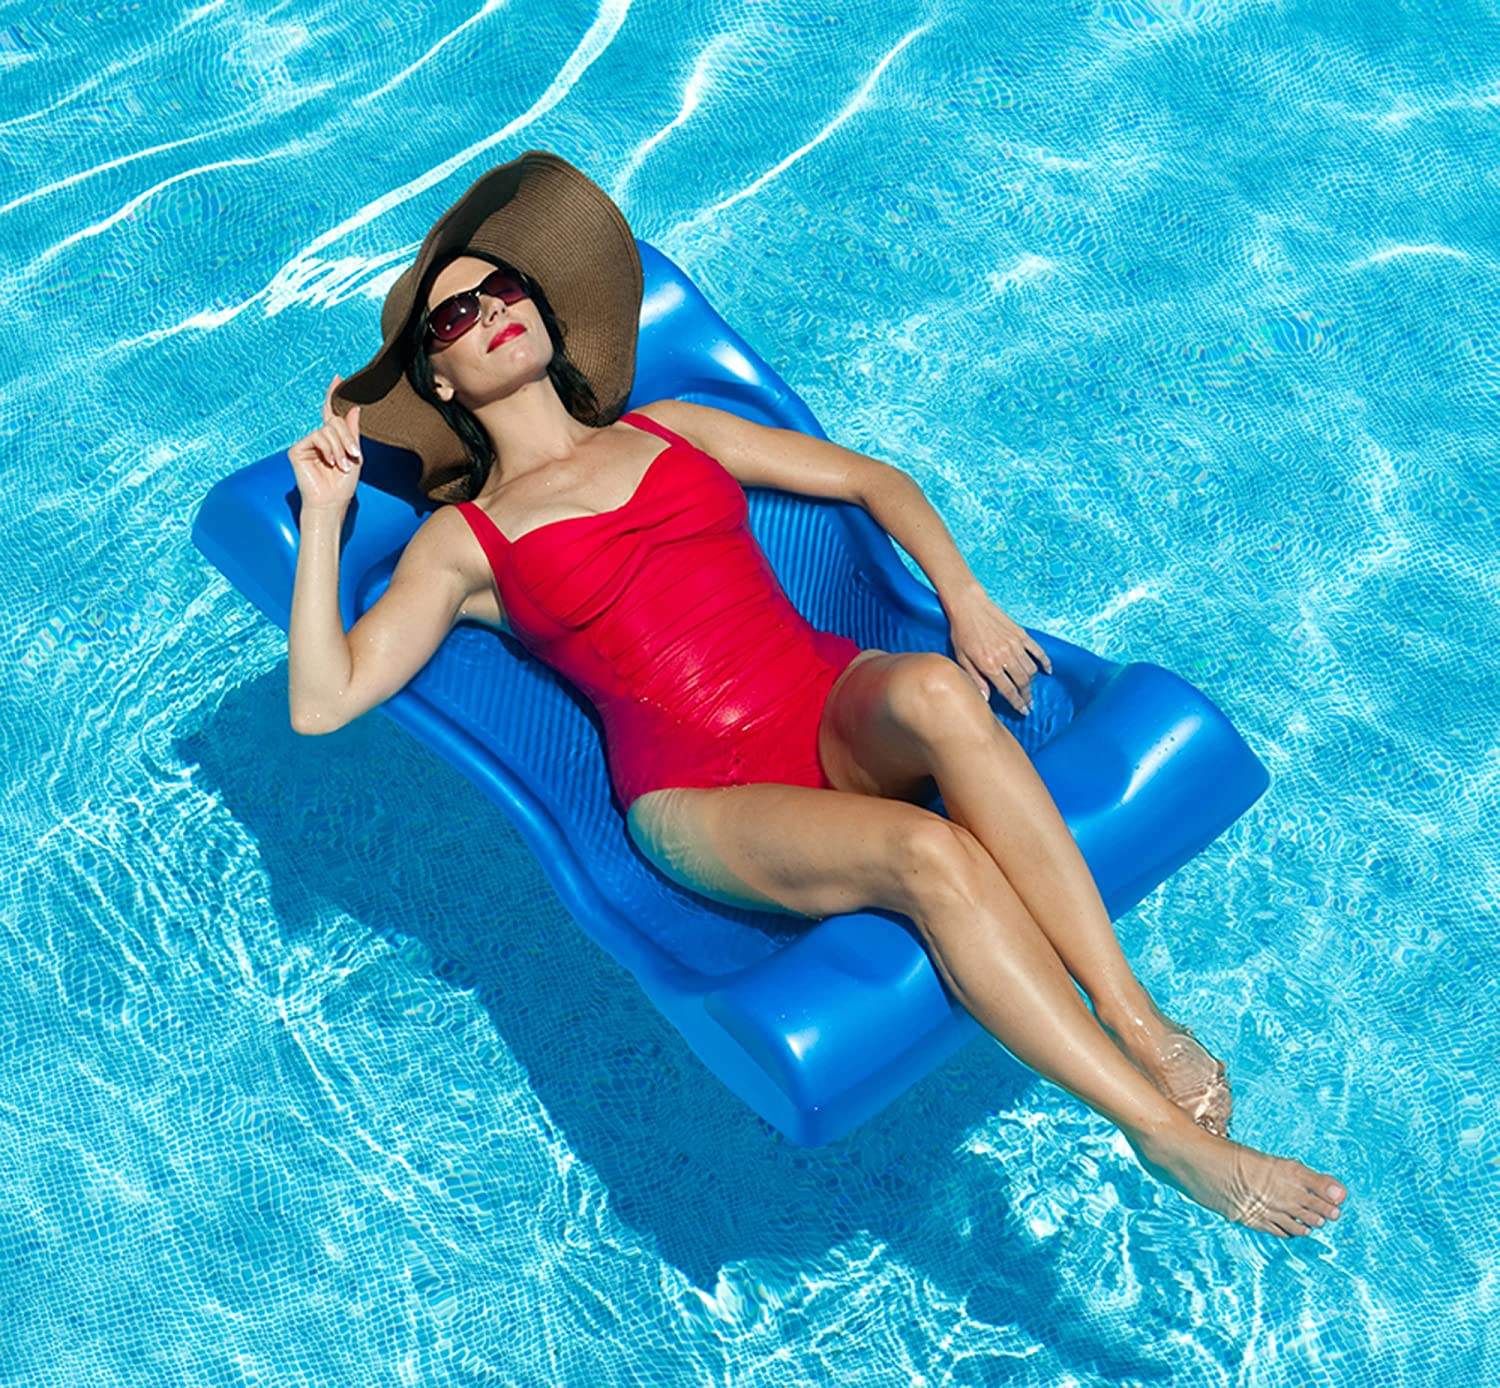 Amazon Deluxe Aqua Hammock Pool Float 48 in x 27 in